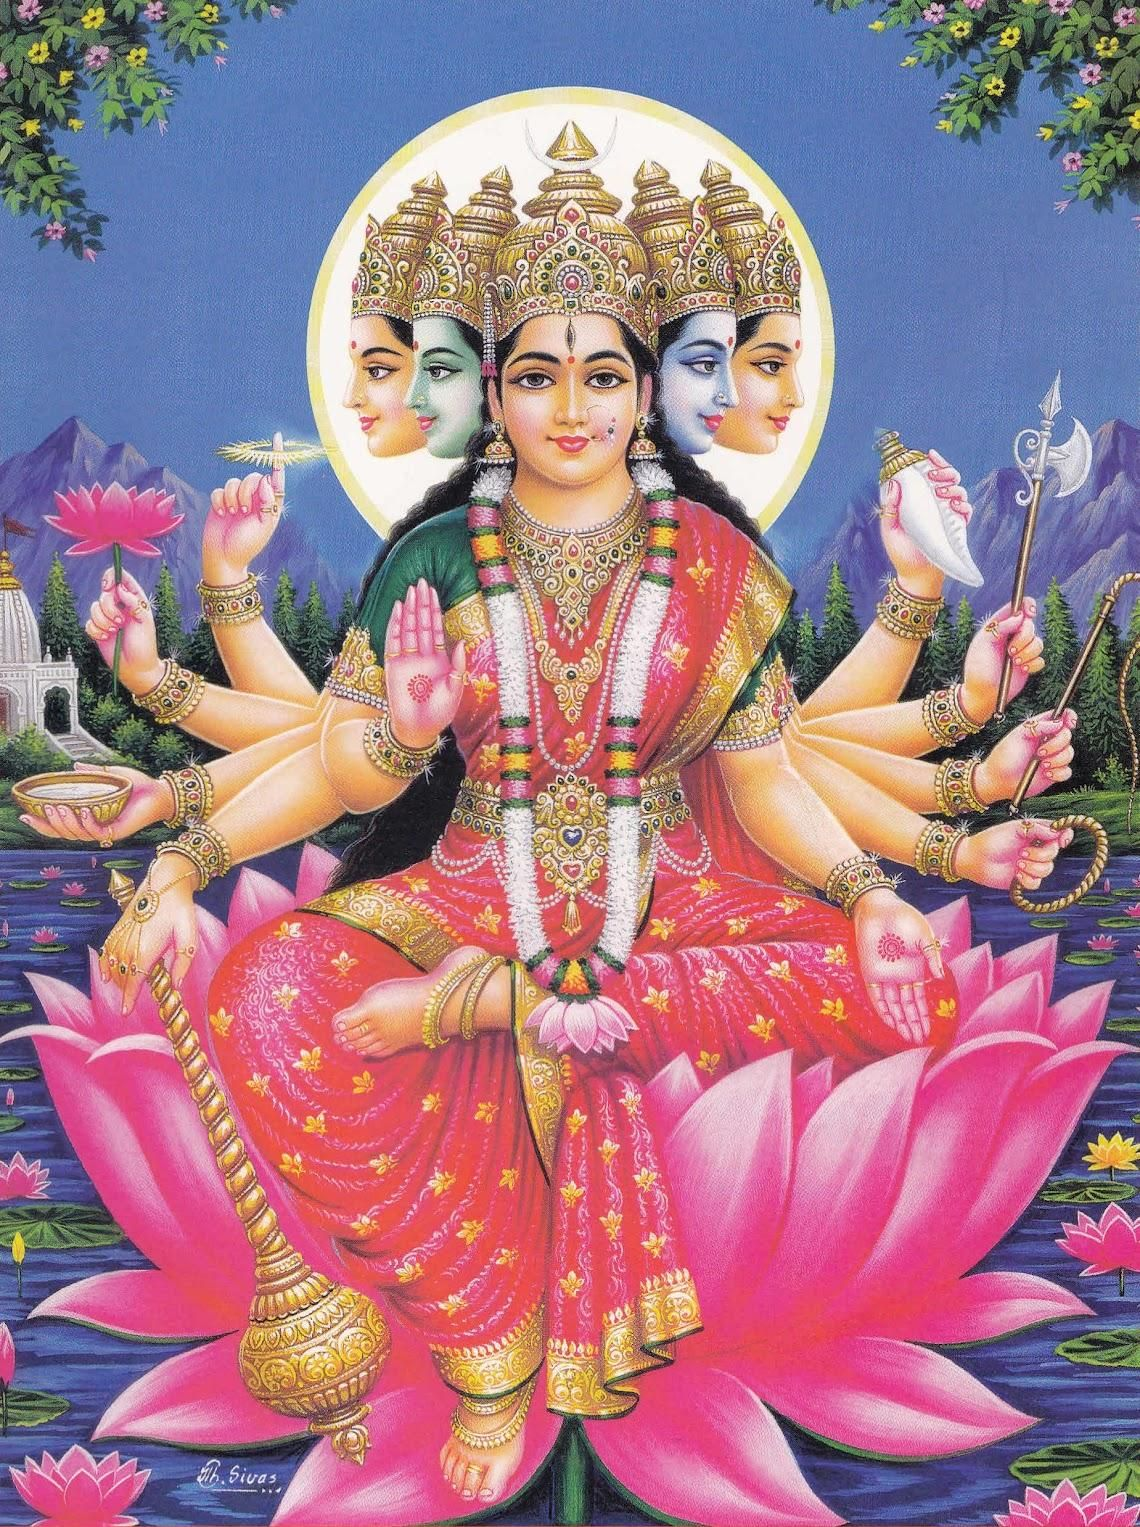 Wonderful Wallpaper Lord Devi - b3d33b1db2c967bff3afb04a940620b9  Image_734850.jpg